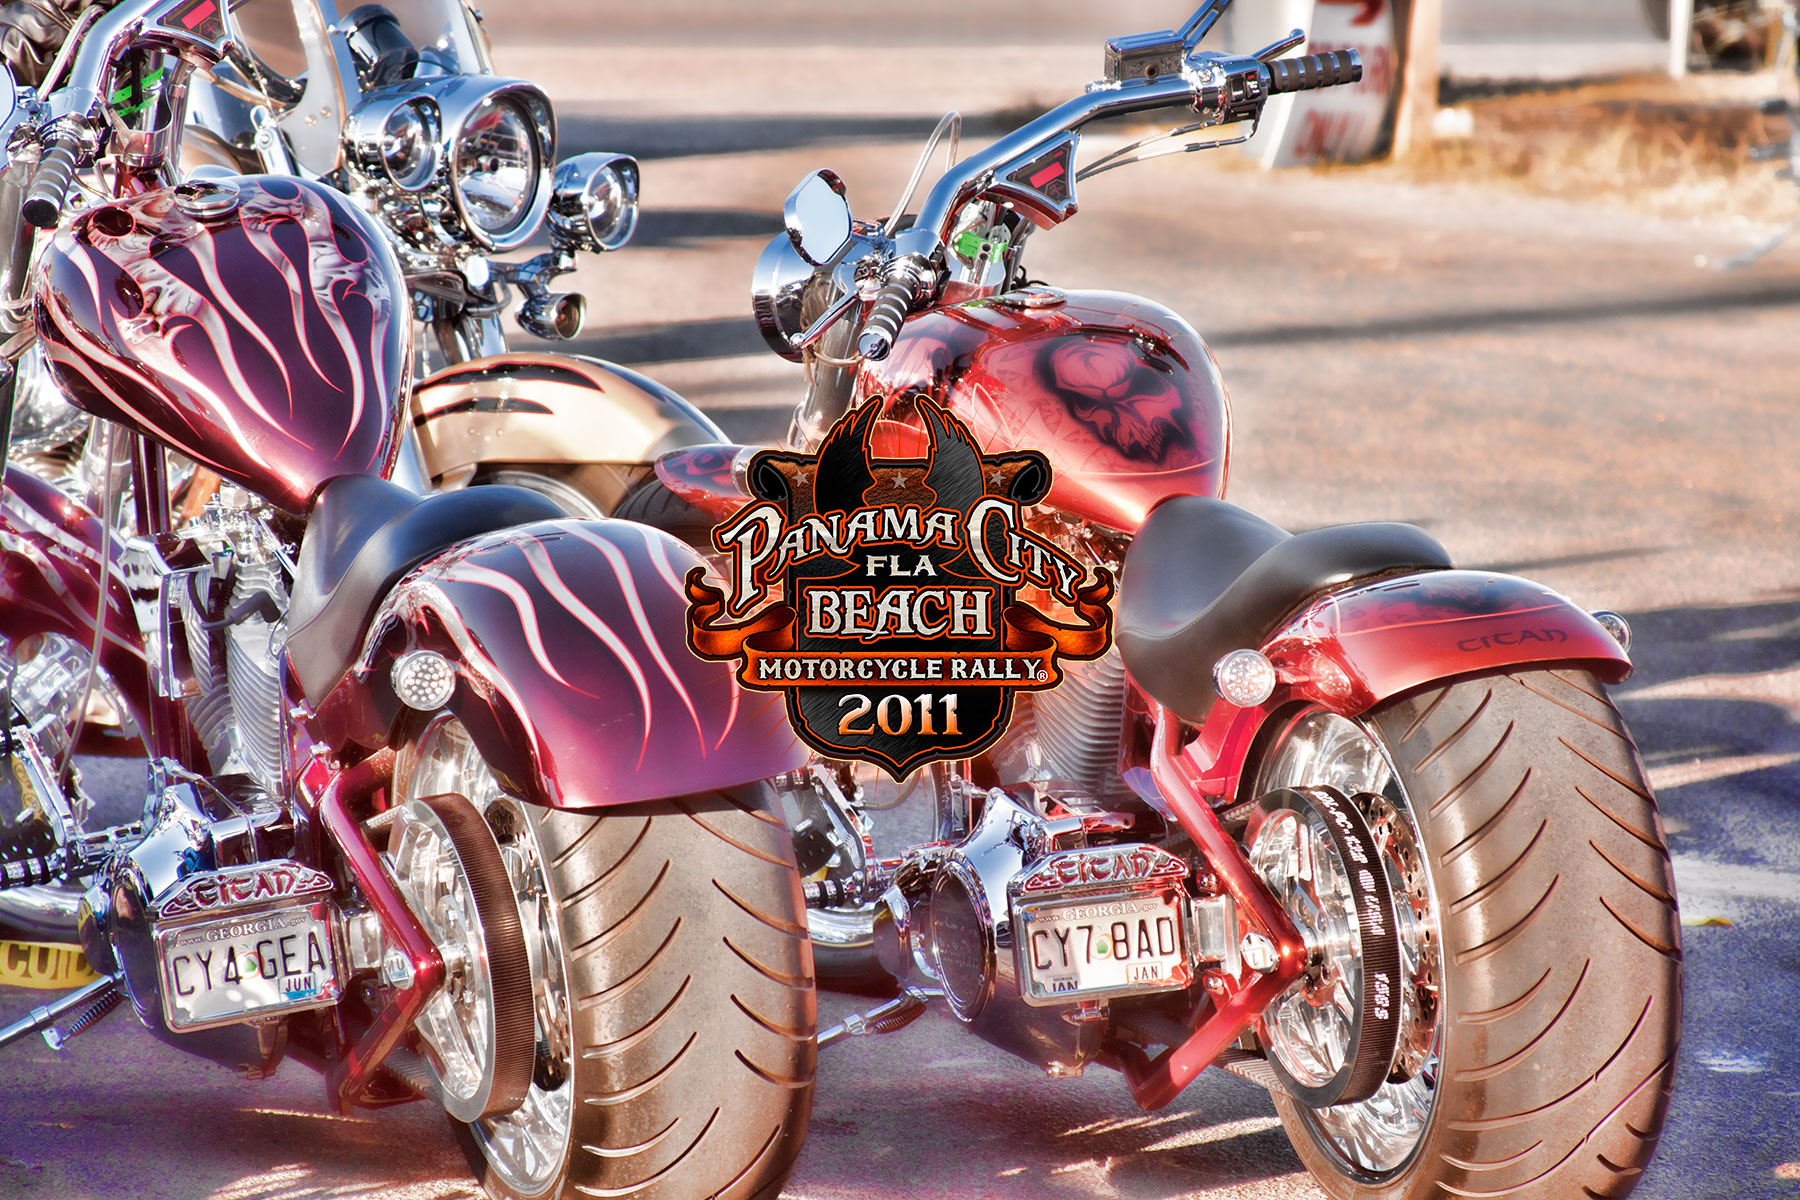 Motorcycle Rally Photos | Panama City Beach Motorcycle Rally® | 2011 Event Photos